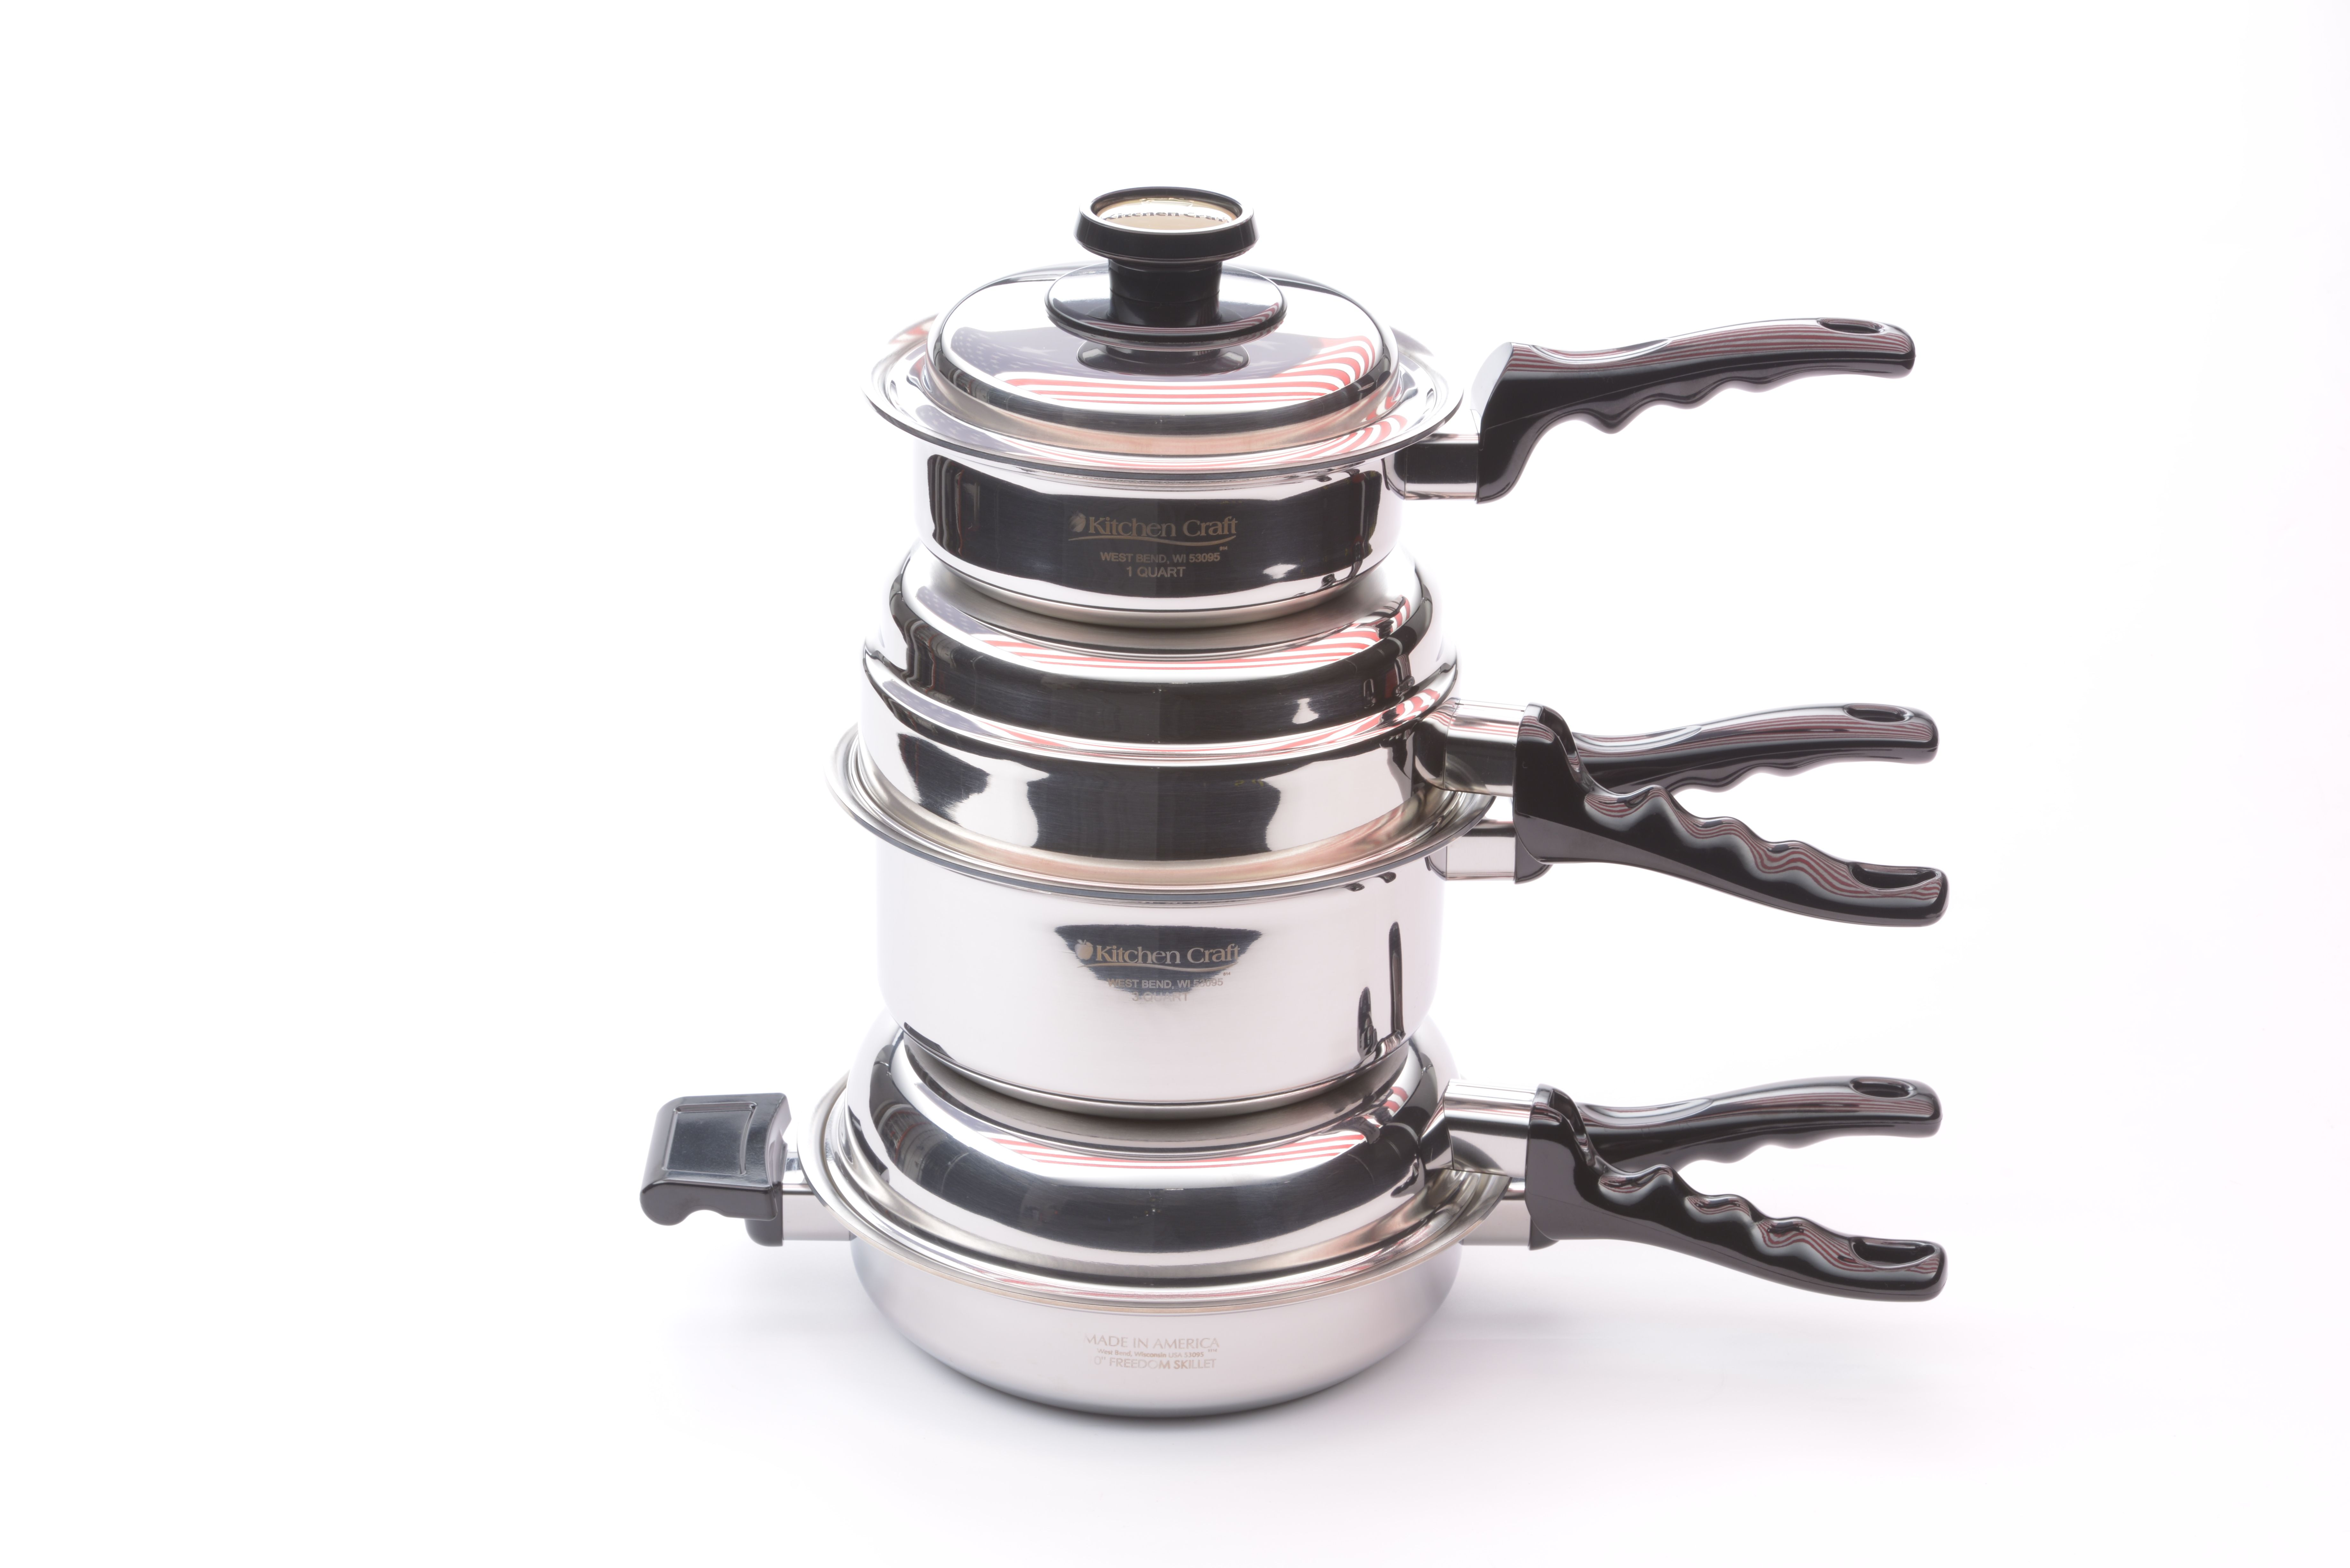 Lustre craft kitchen kutter - 1000 Images About Our Cookware On Pinterest Vegetables Products And Seafood